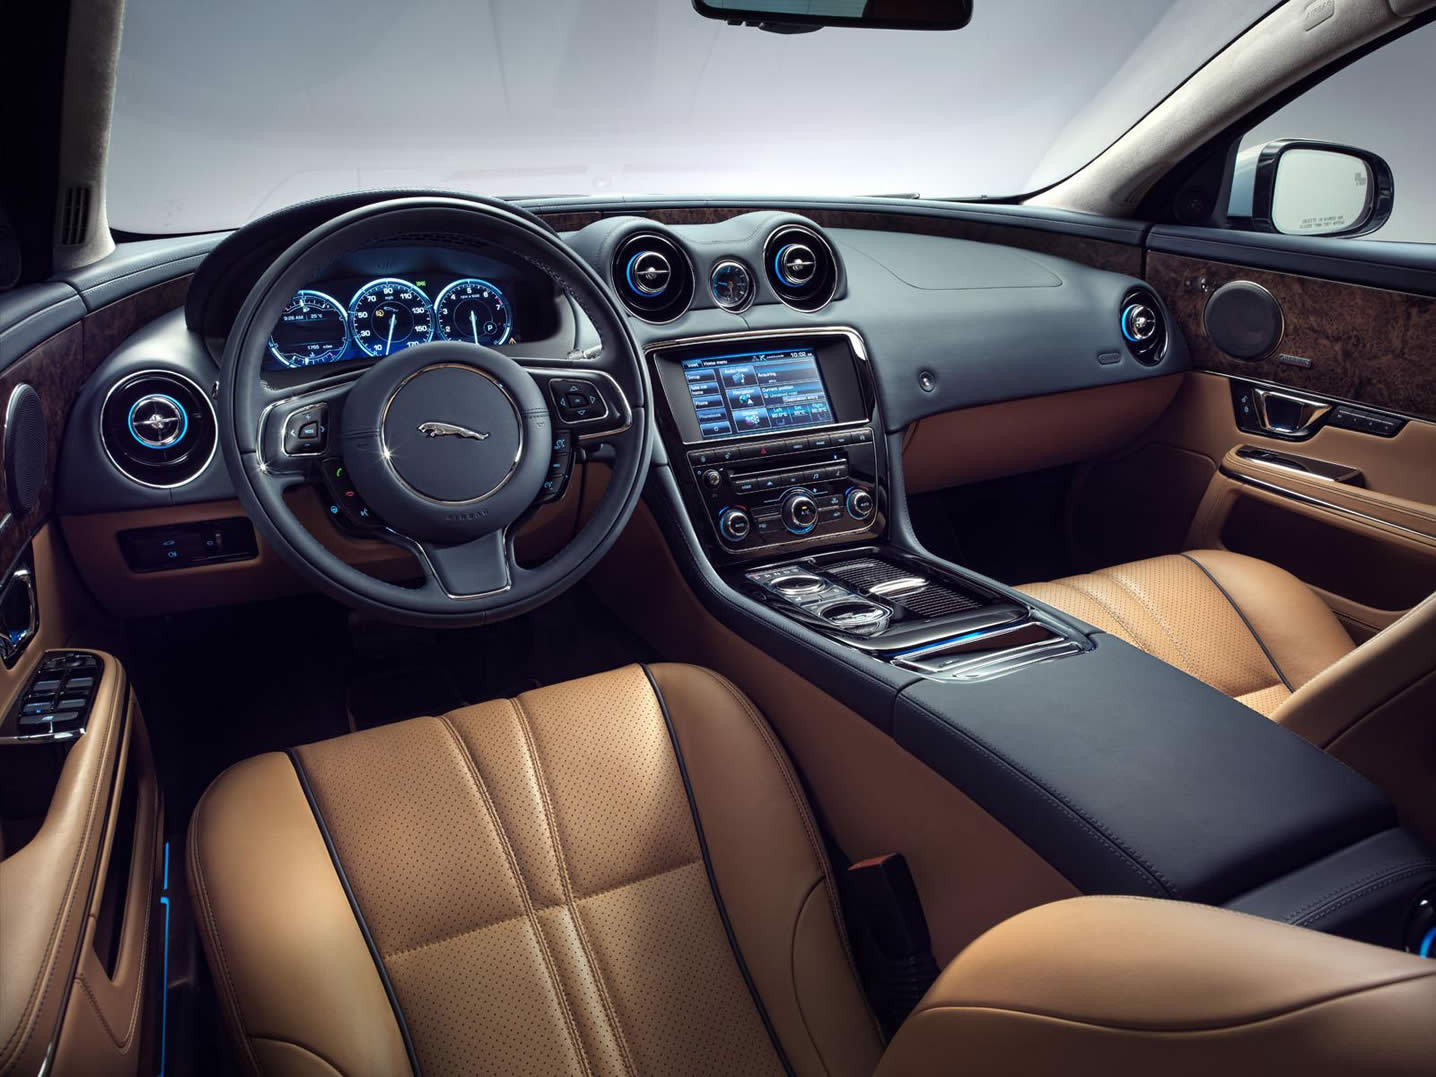 2014-Jaguar-XJ-interior